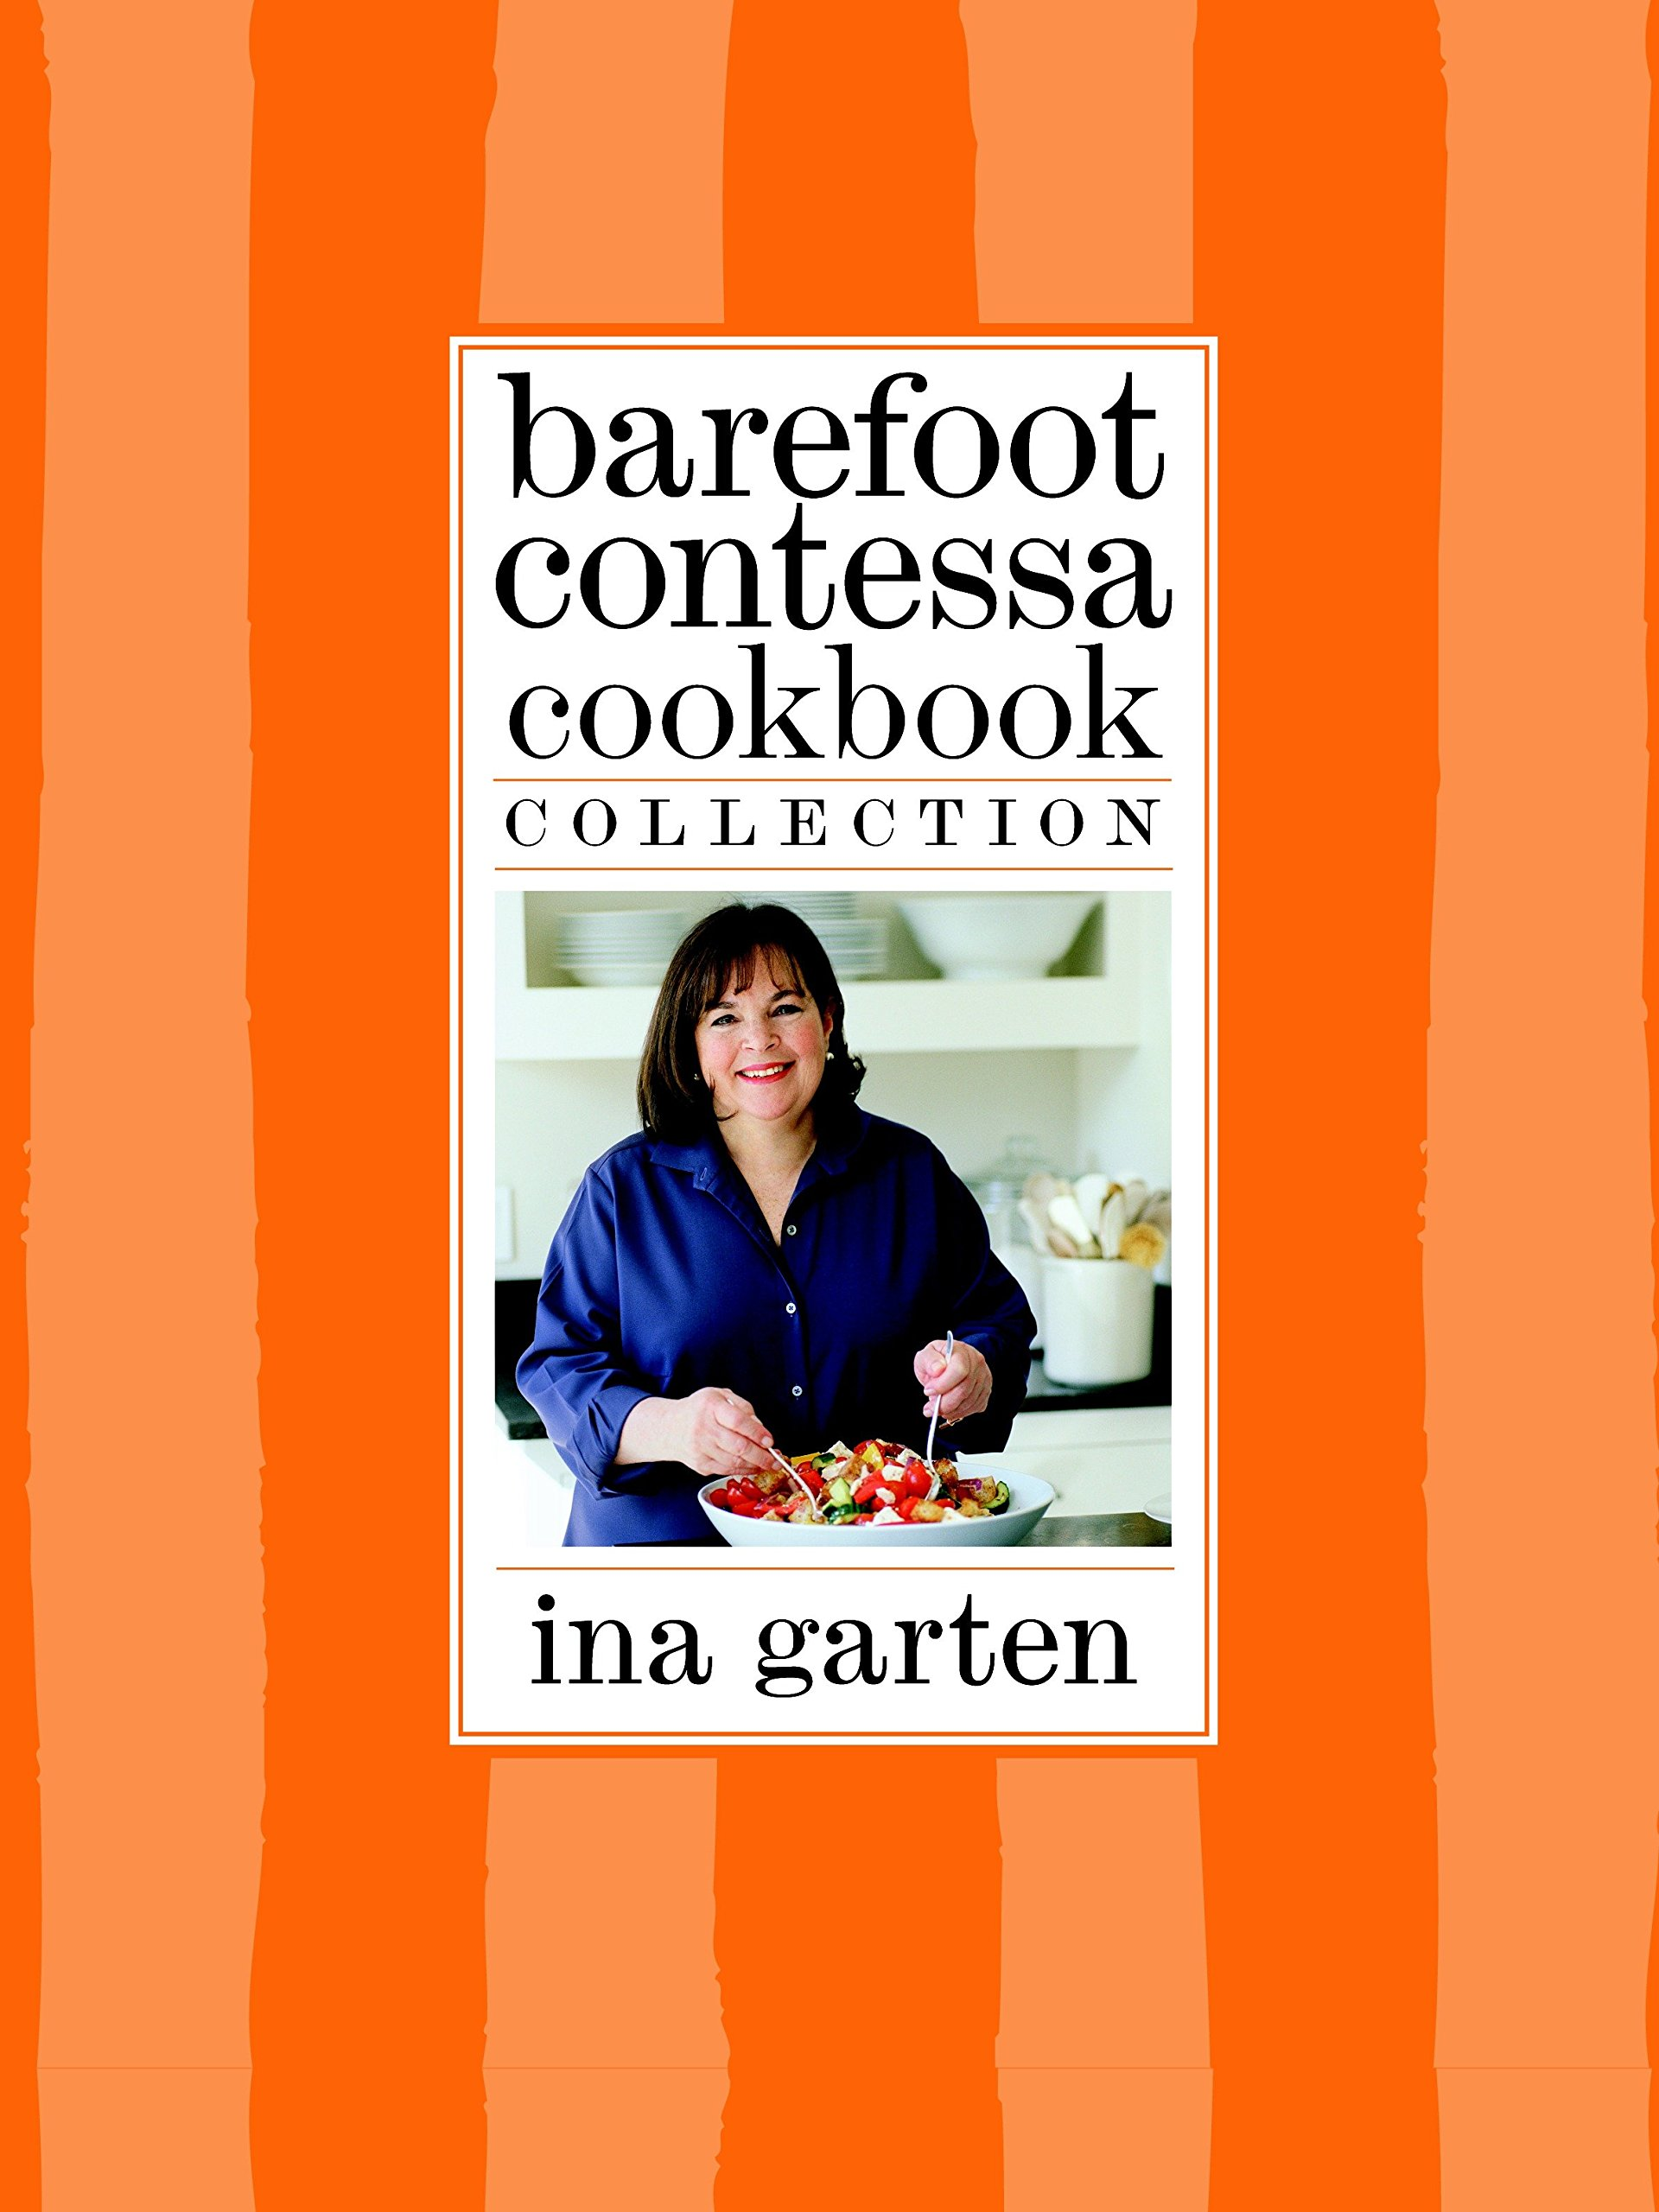 Barefoot Contessa Cookbook Collection: The Barefoot Contessa Cookbook, Barefoot Contessa Parties!, and Barefoot Contessa Family Style by Clarkson Potter